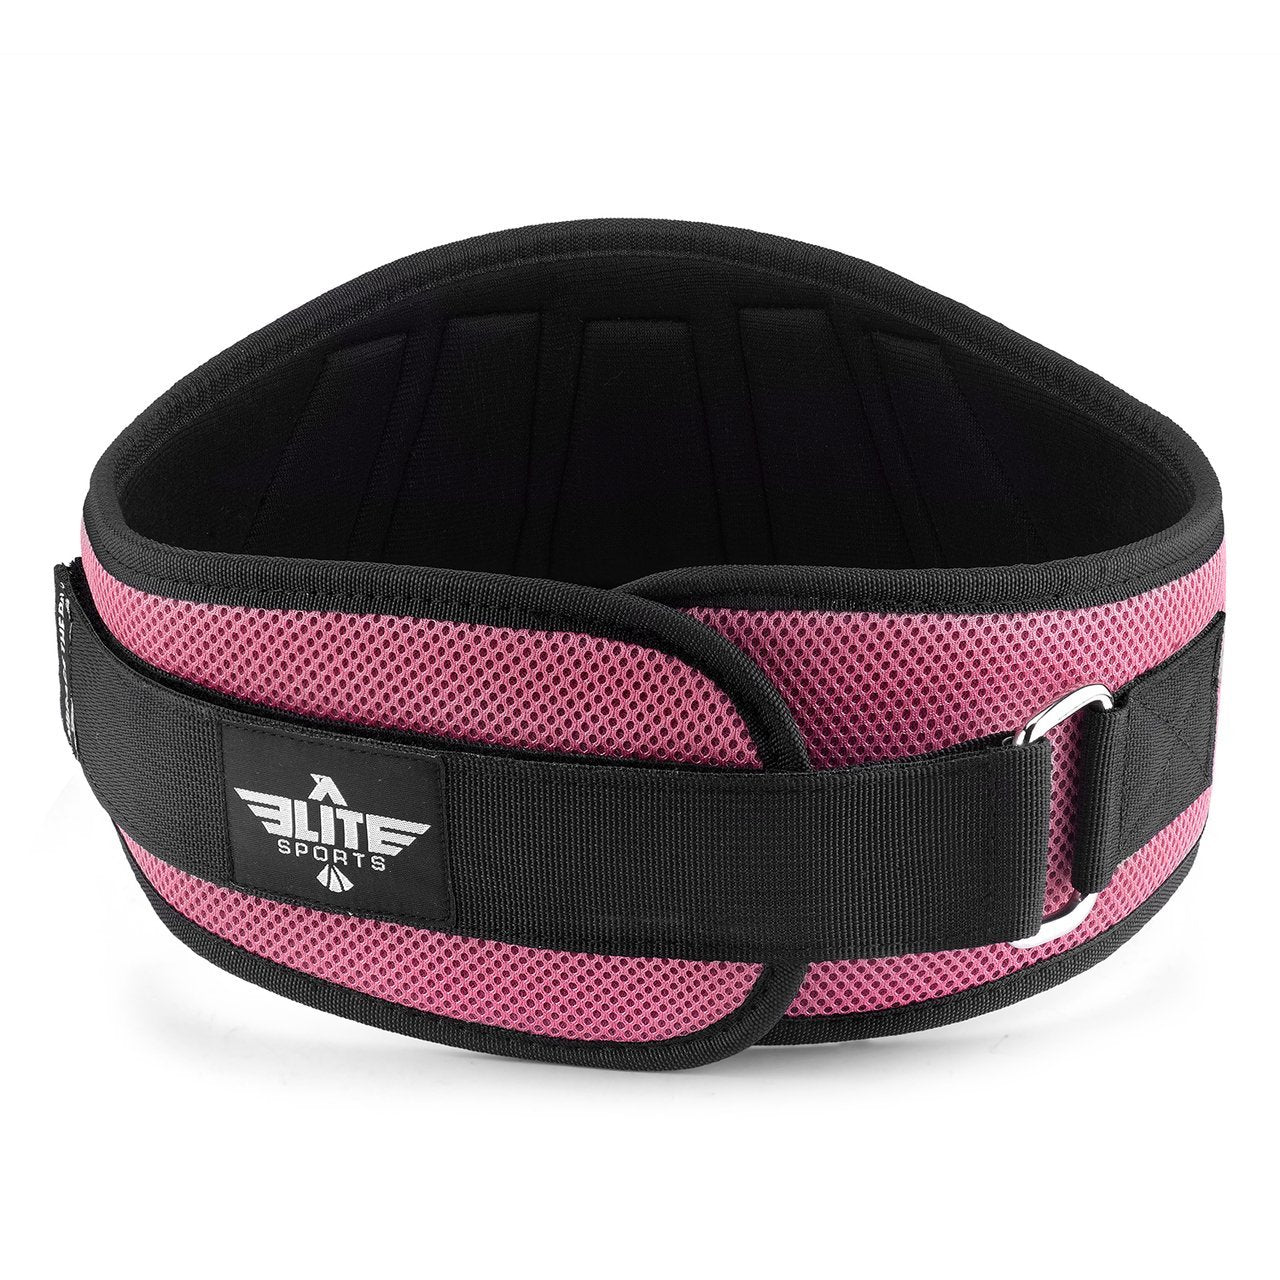 Load image into Gallery viewer, Elite Sports Pink Back Support Weight Lifting Belt